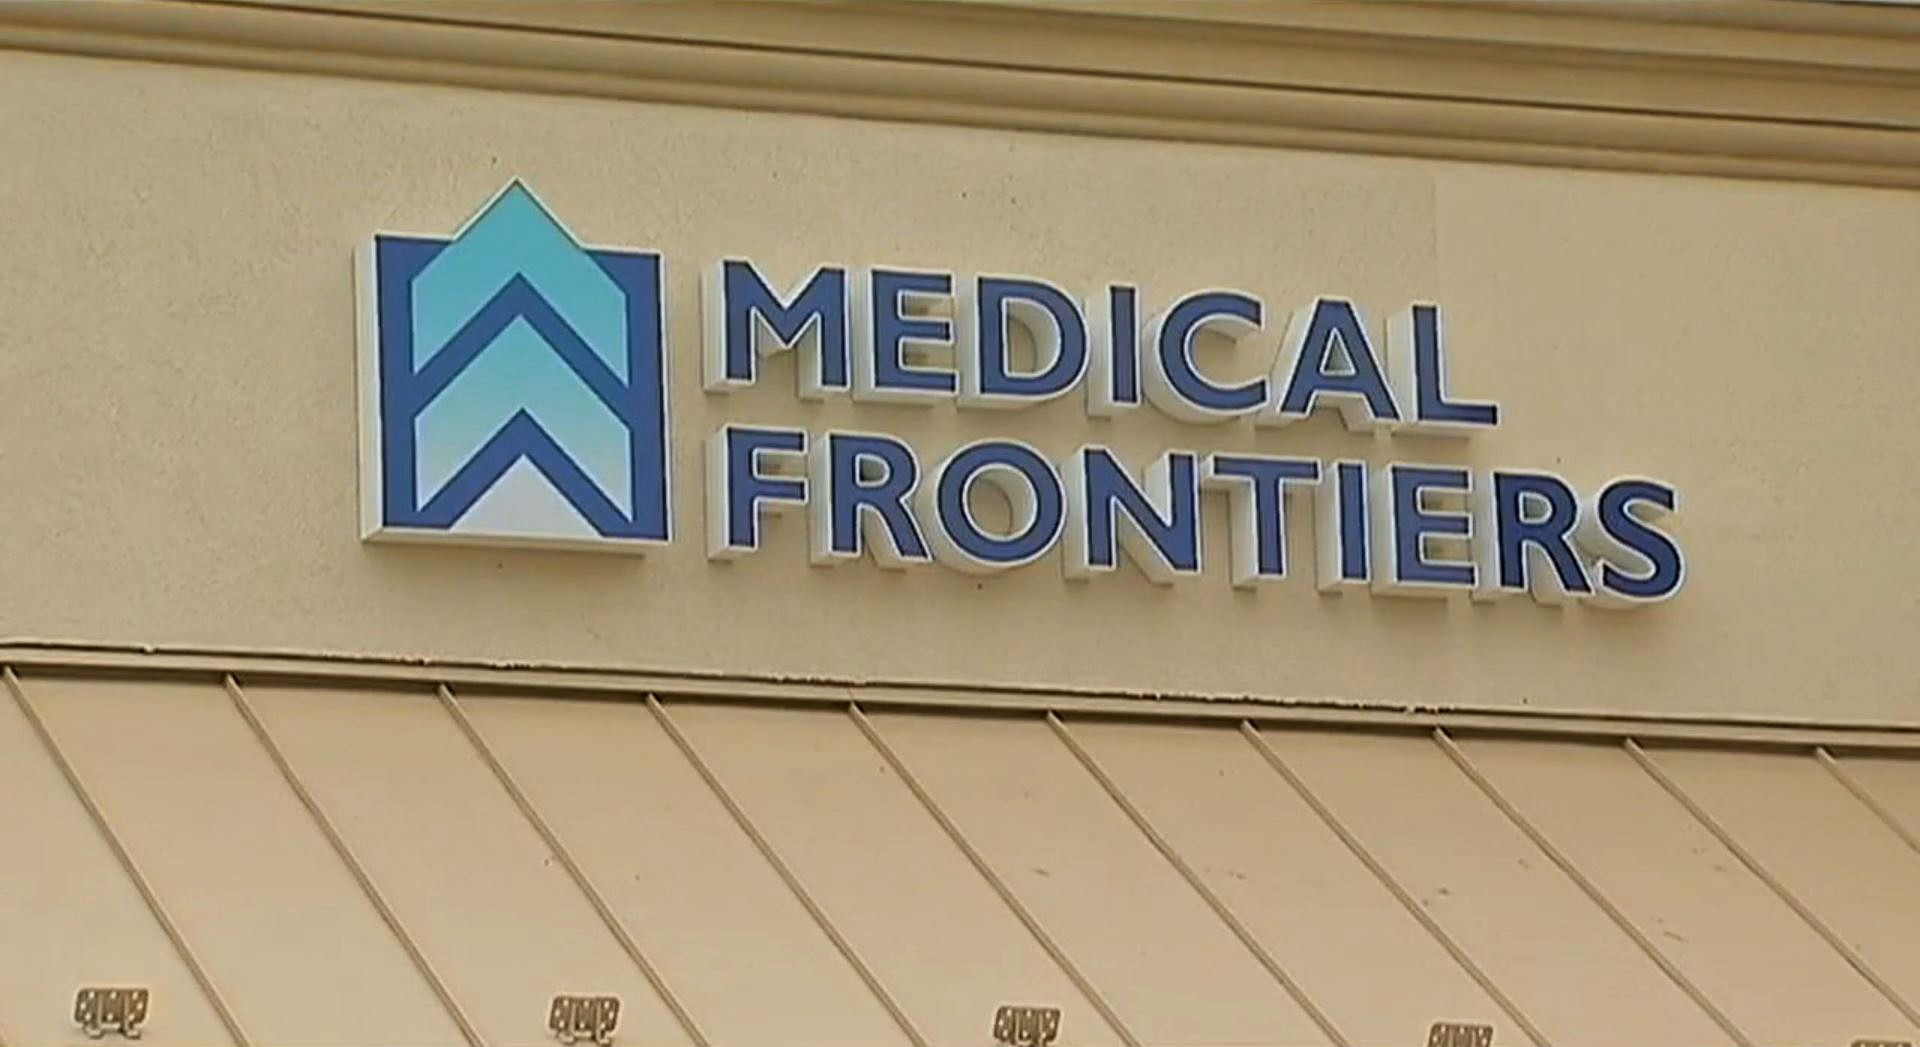 Image: Medical Frontiers, the office of Andrzej Kazimierz Zielke, in Pittsburgh, Pennsylvania.